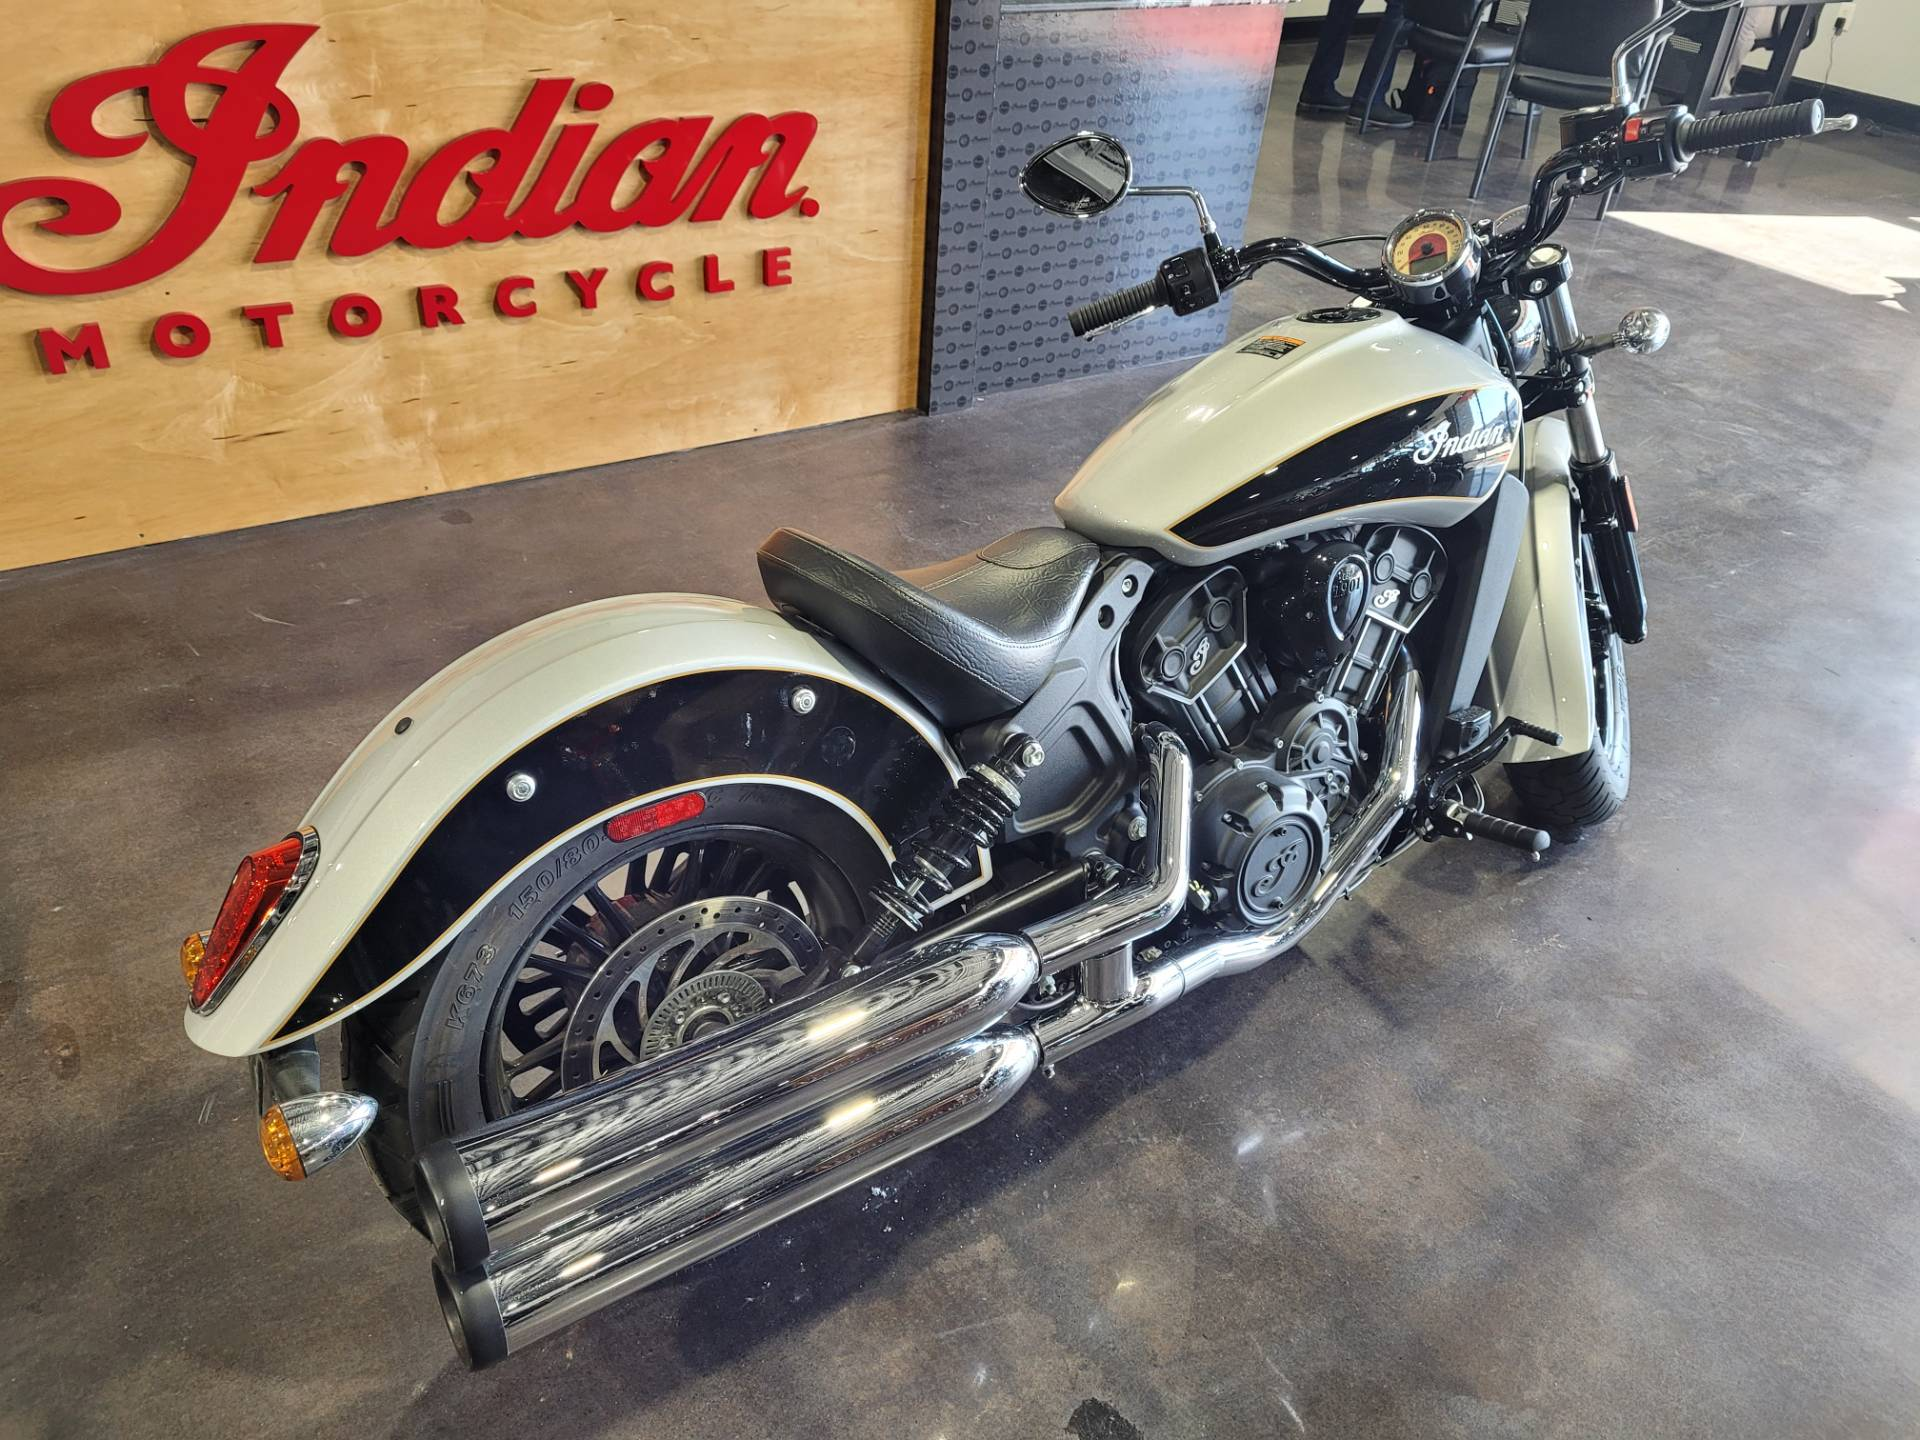 Used 2019 Indian Scout Sixty Abs Star Silver Thunder Black Motorcycles In Wilmington De Ind143442 [ 1440 x 1920 Pixel ]